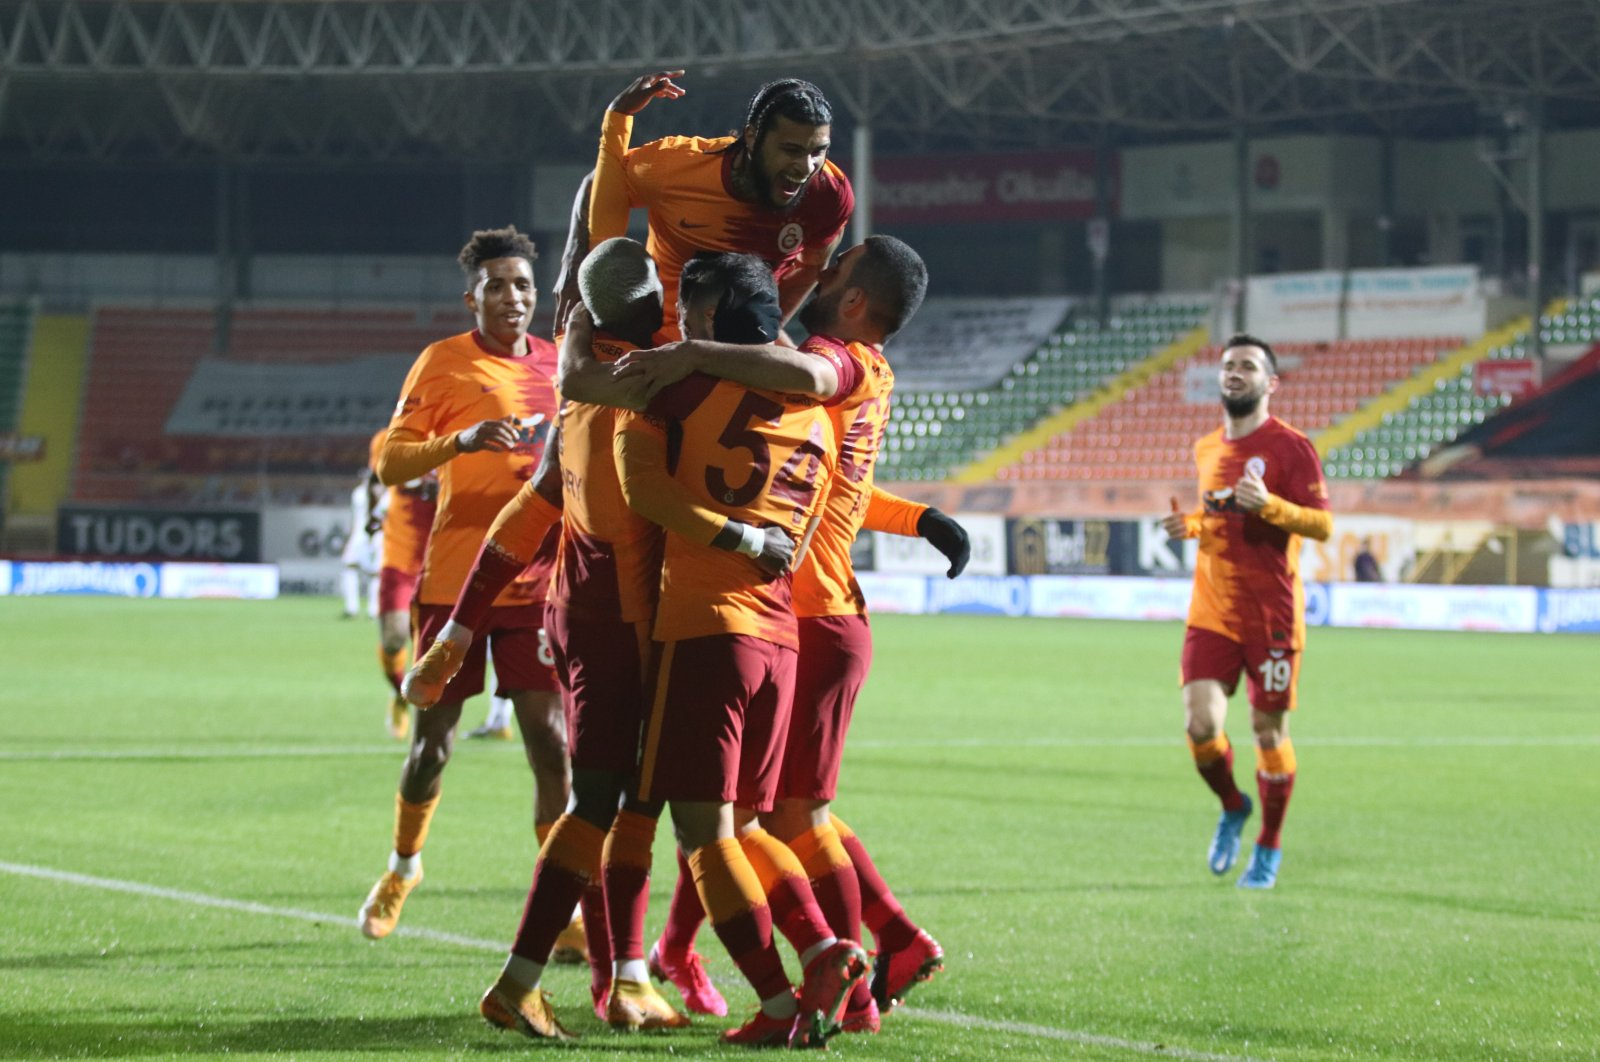 Galatasaray players celebrate a goal against Alanyaspor at Antalya's Bahçeşehir Okulları Stadium, Jan. 20, 2021. (IHA Photo)